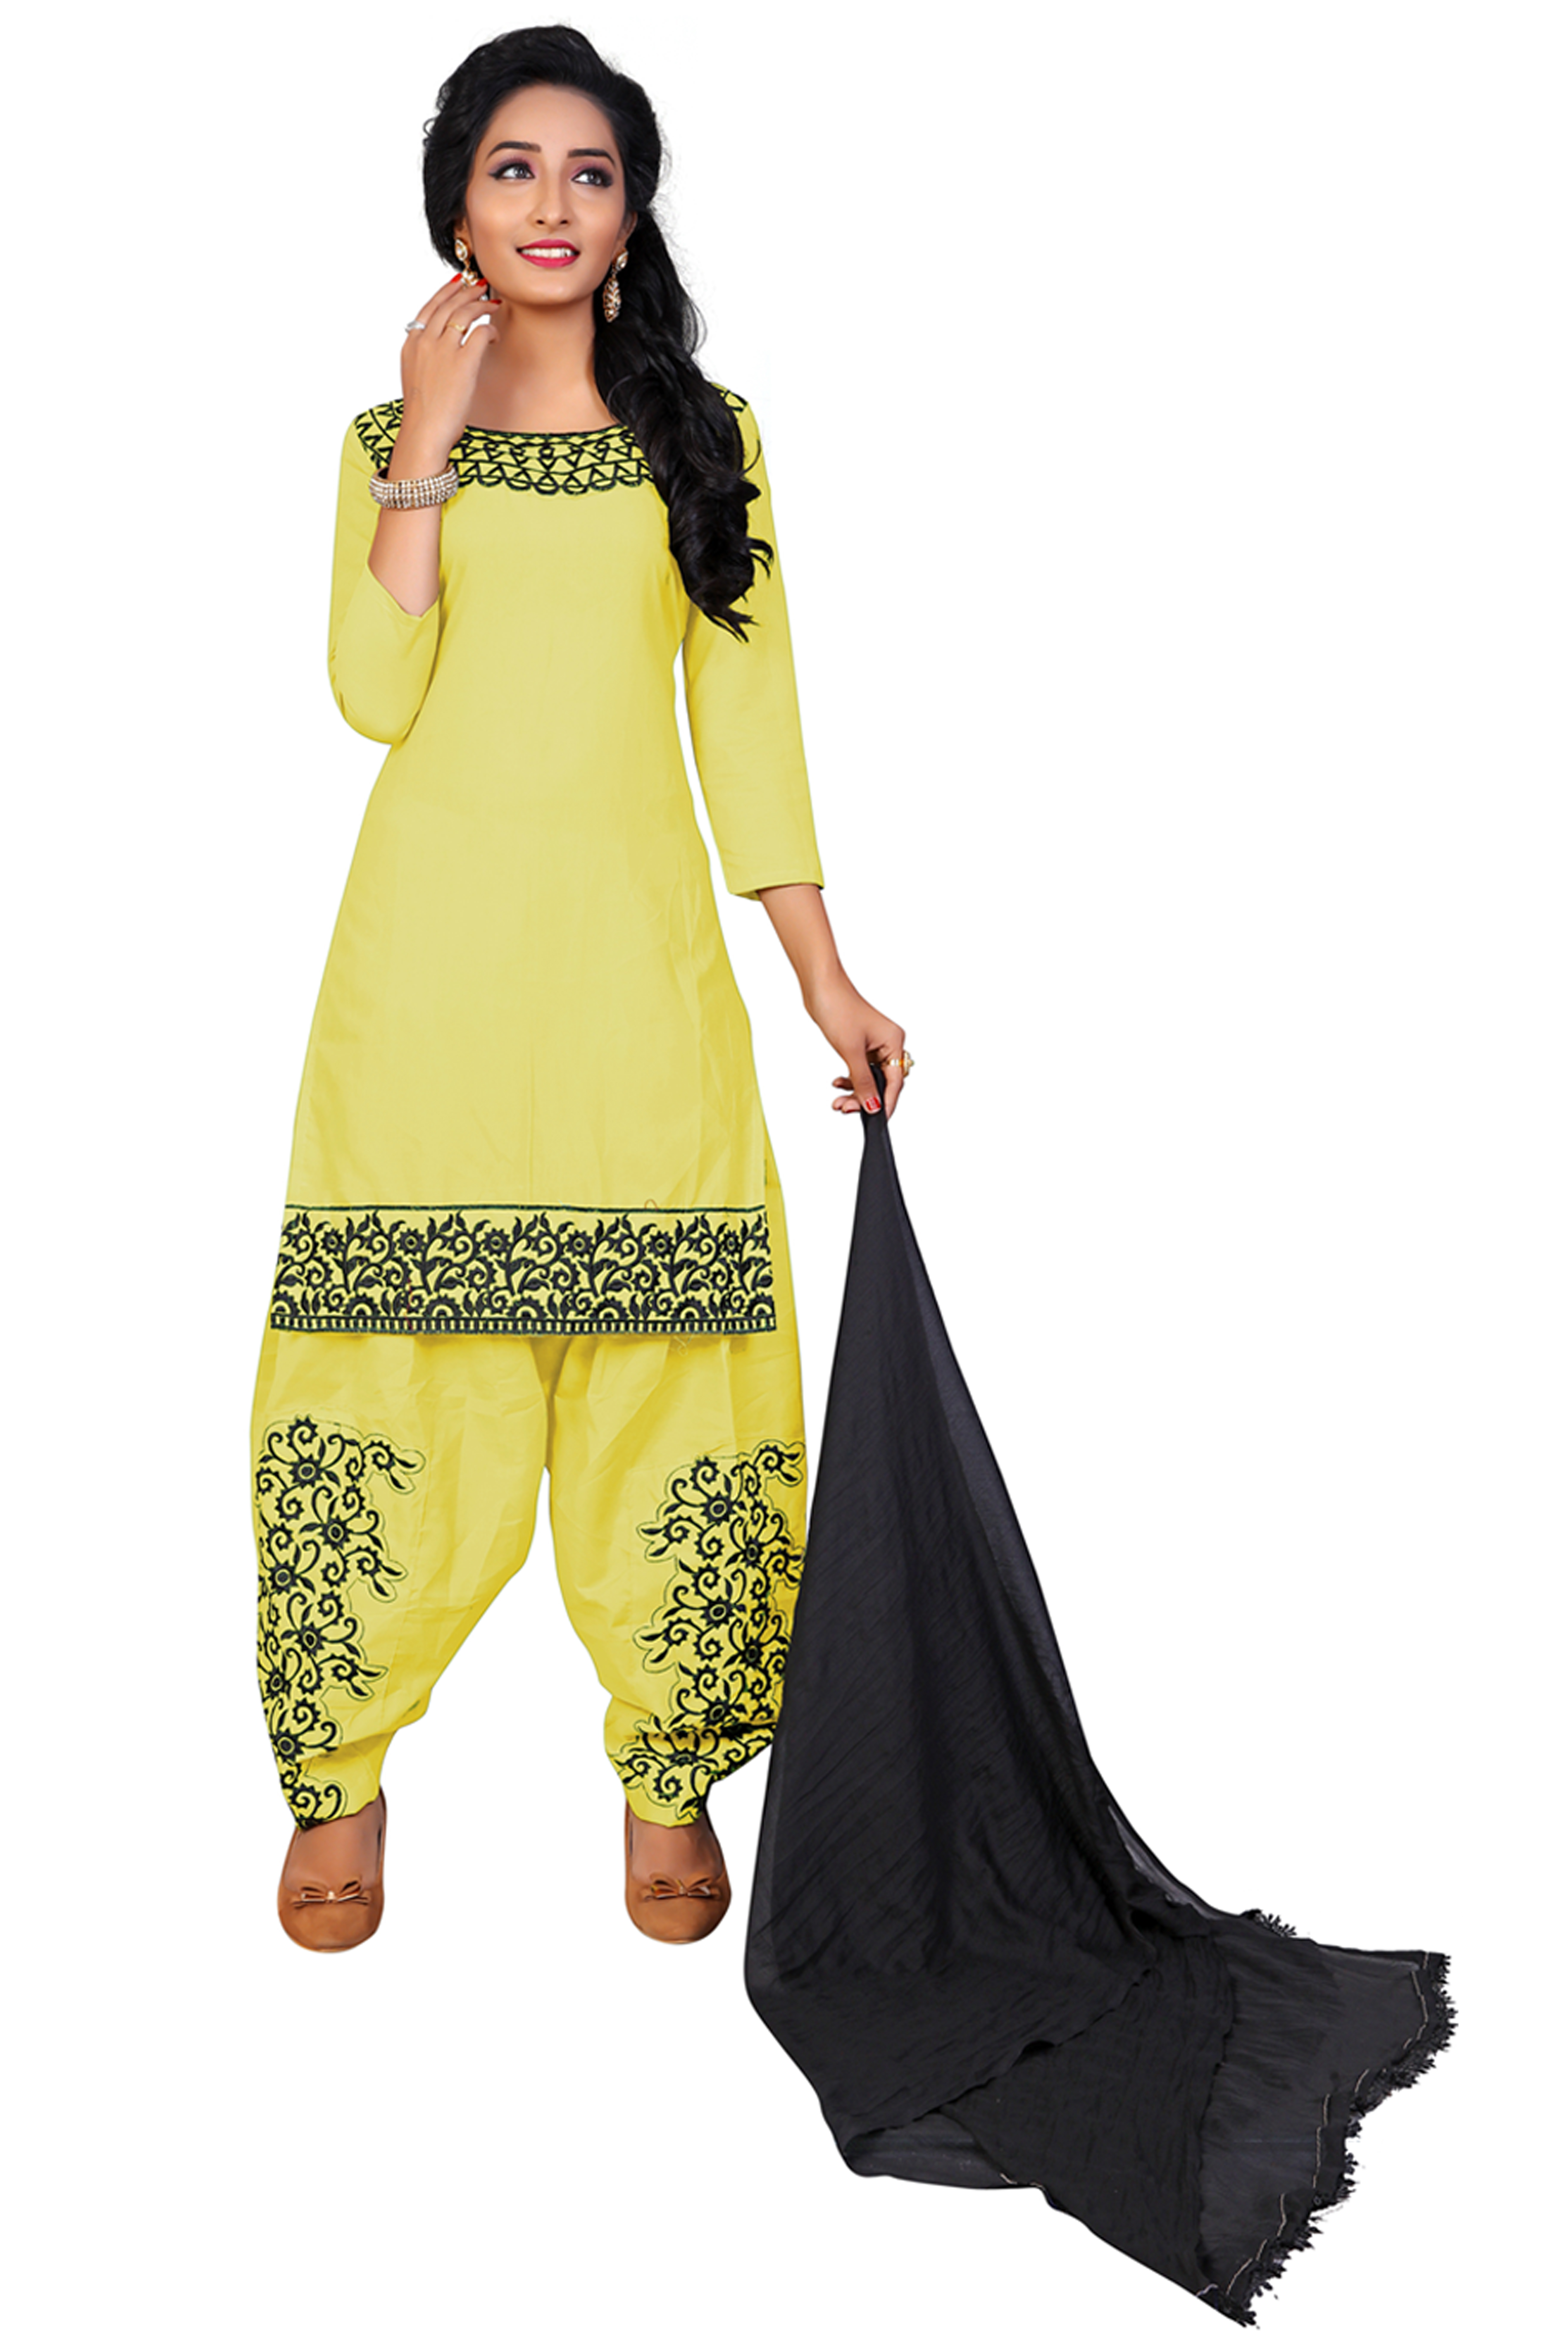 Style:- light yellow patilal  #Fantastic Top, Bottom and Dupatta. #super Top, Inner and Dupatta. #fabulous Exclusively Newly Designed Product.Semi-stitched patiala salwar suit #marvelous Occasion Evening Wear, Party Wear, Casual Wear  price:- 449/-  Contact for call and whatapp : 99243644307 Piyush Dhameliya